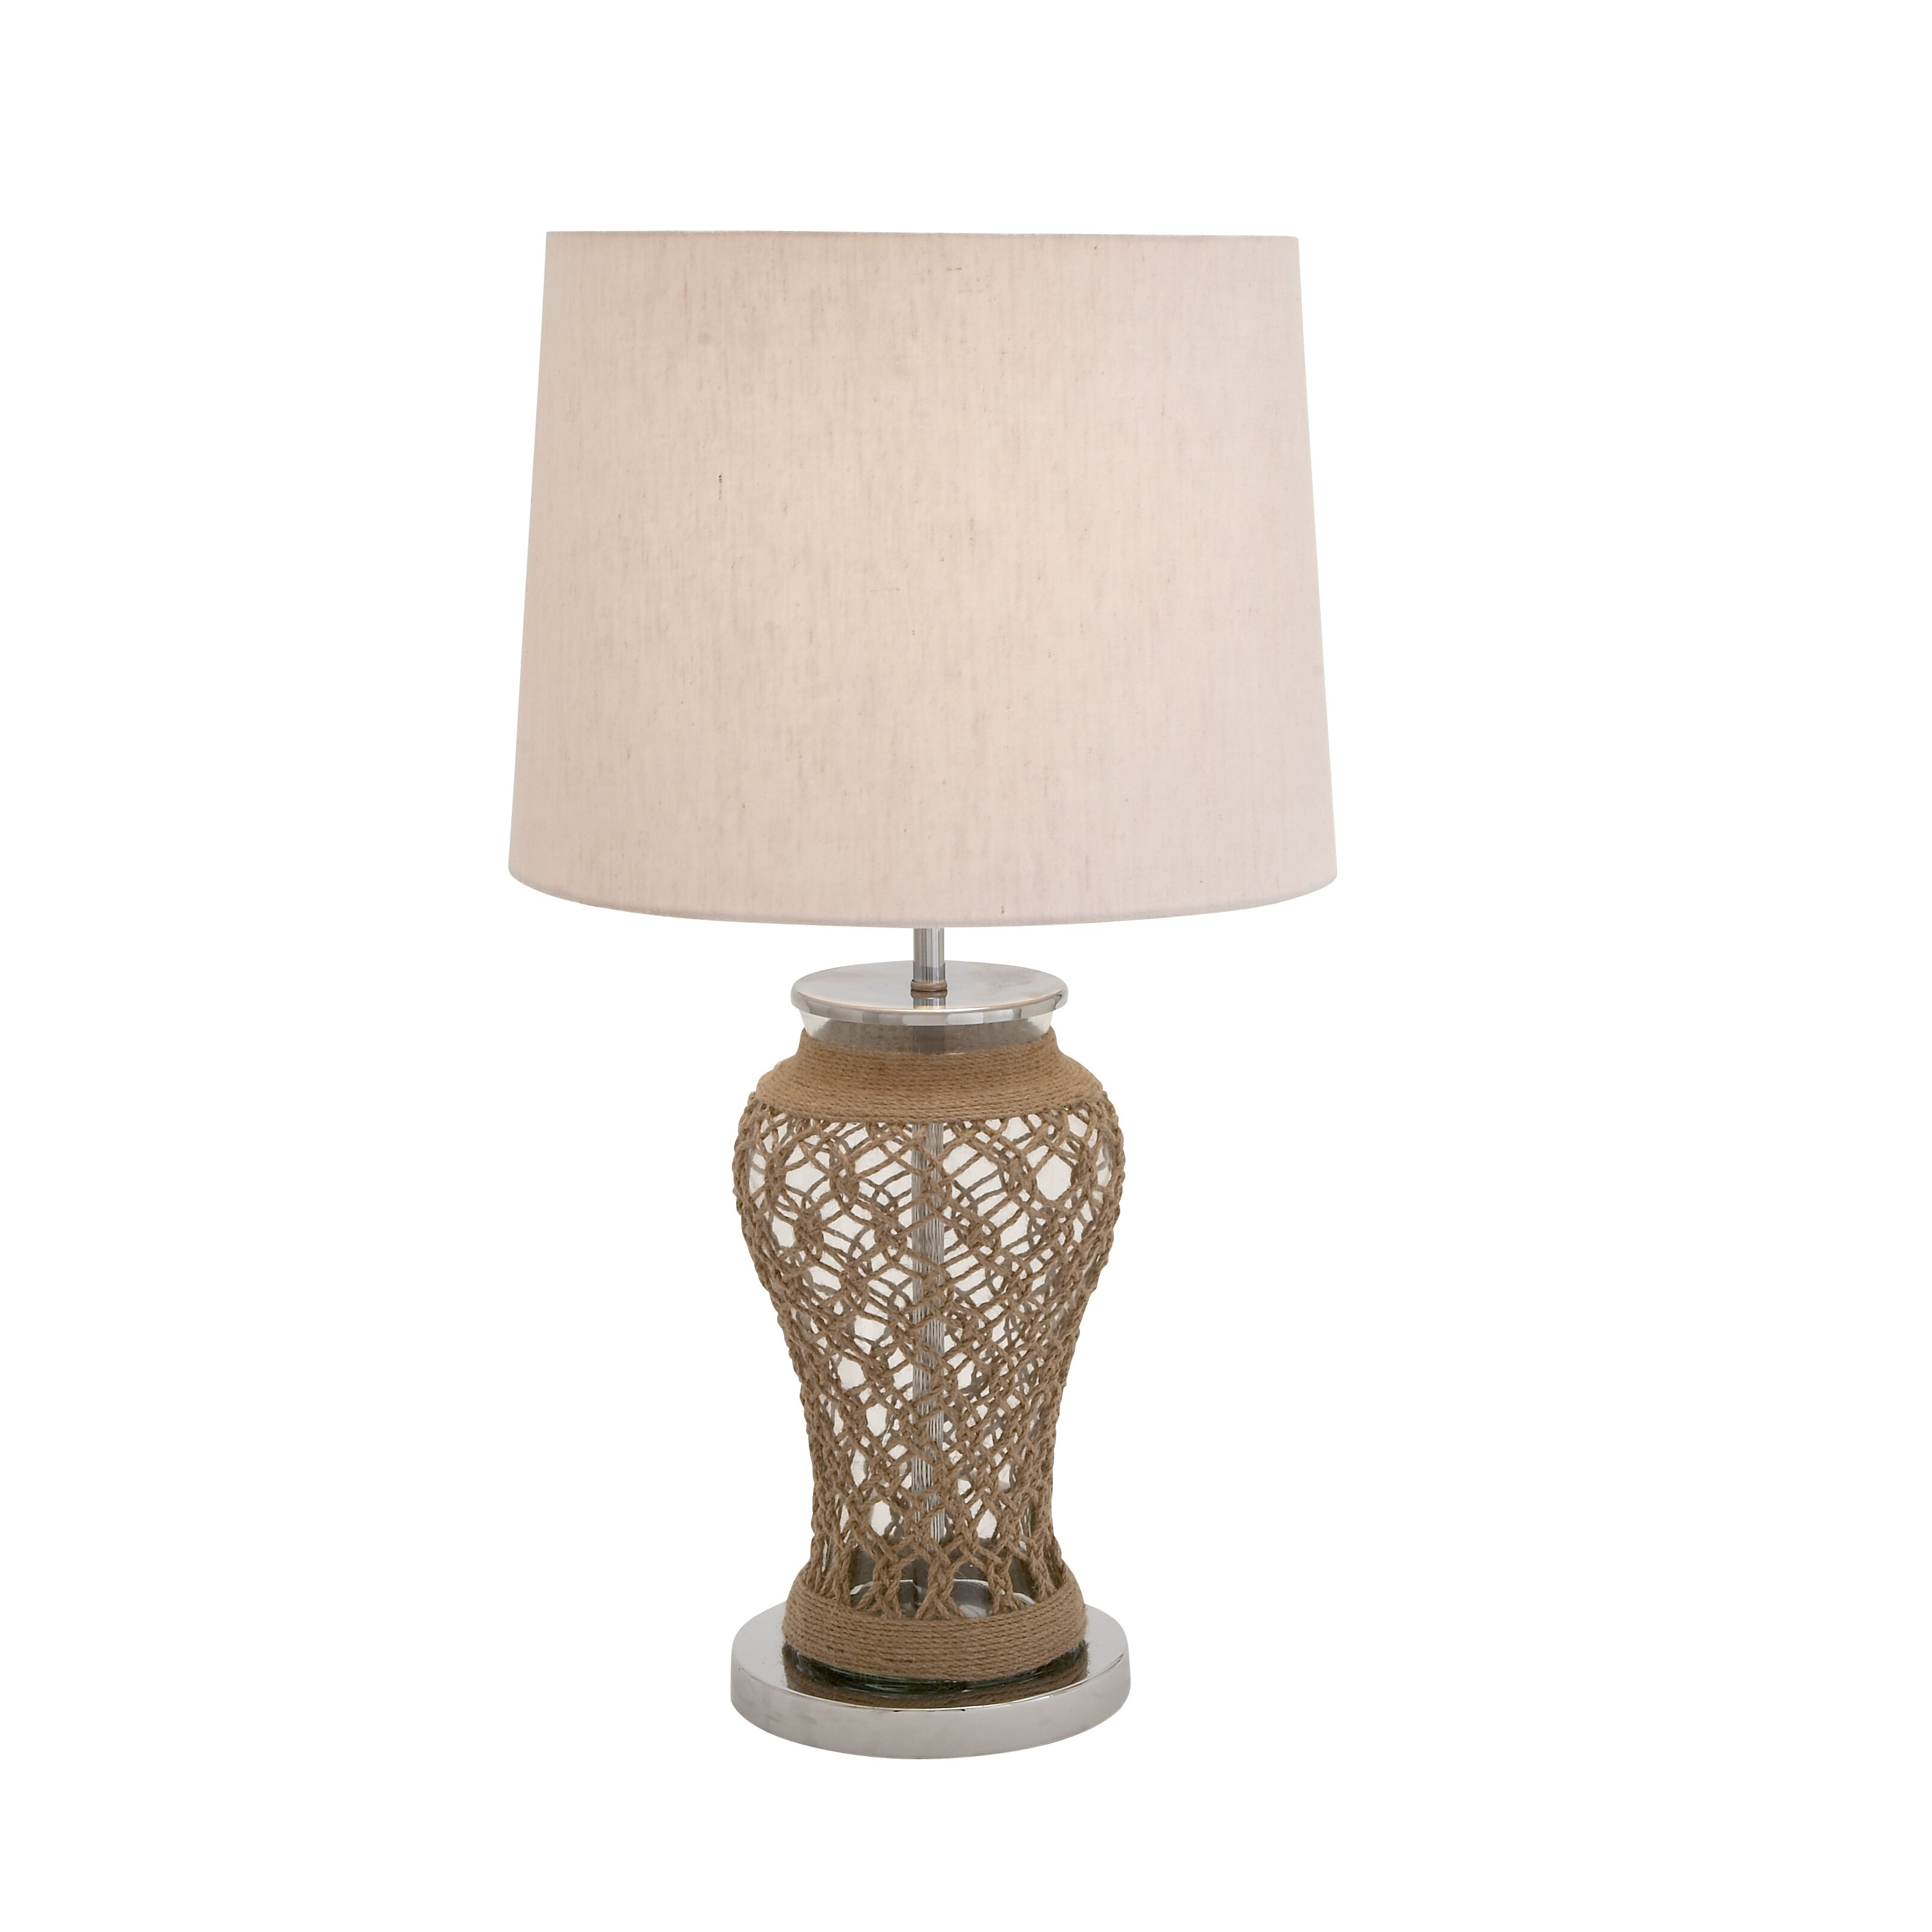 classy stainless steel glass jute 28 h table lamp with. Black Bedroom Furniture Sets. Home Design Ideas